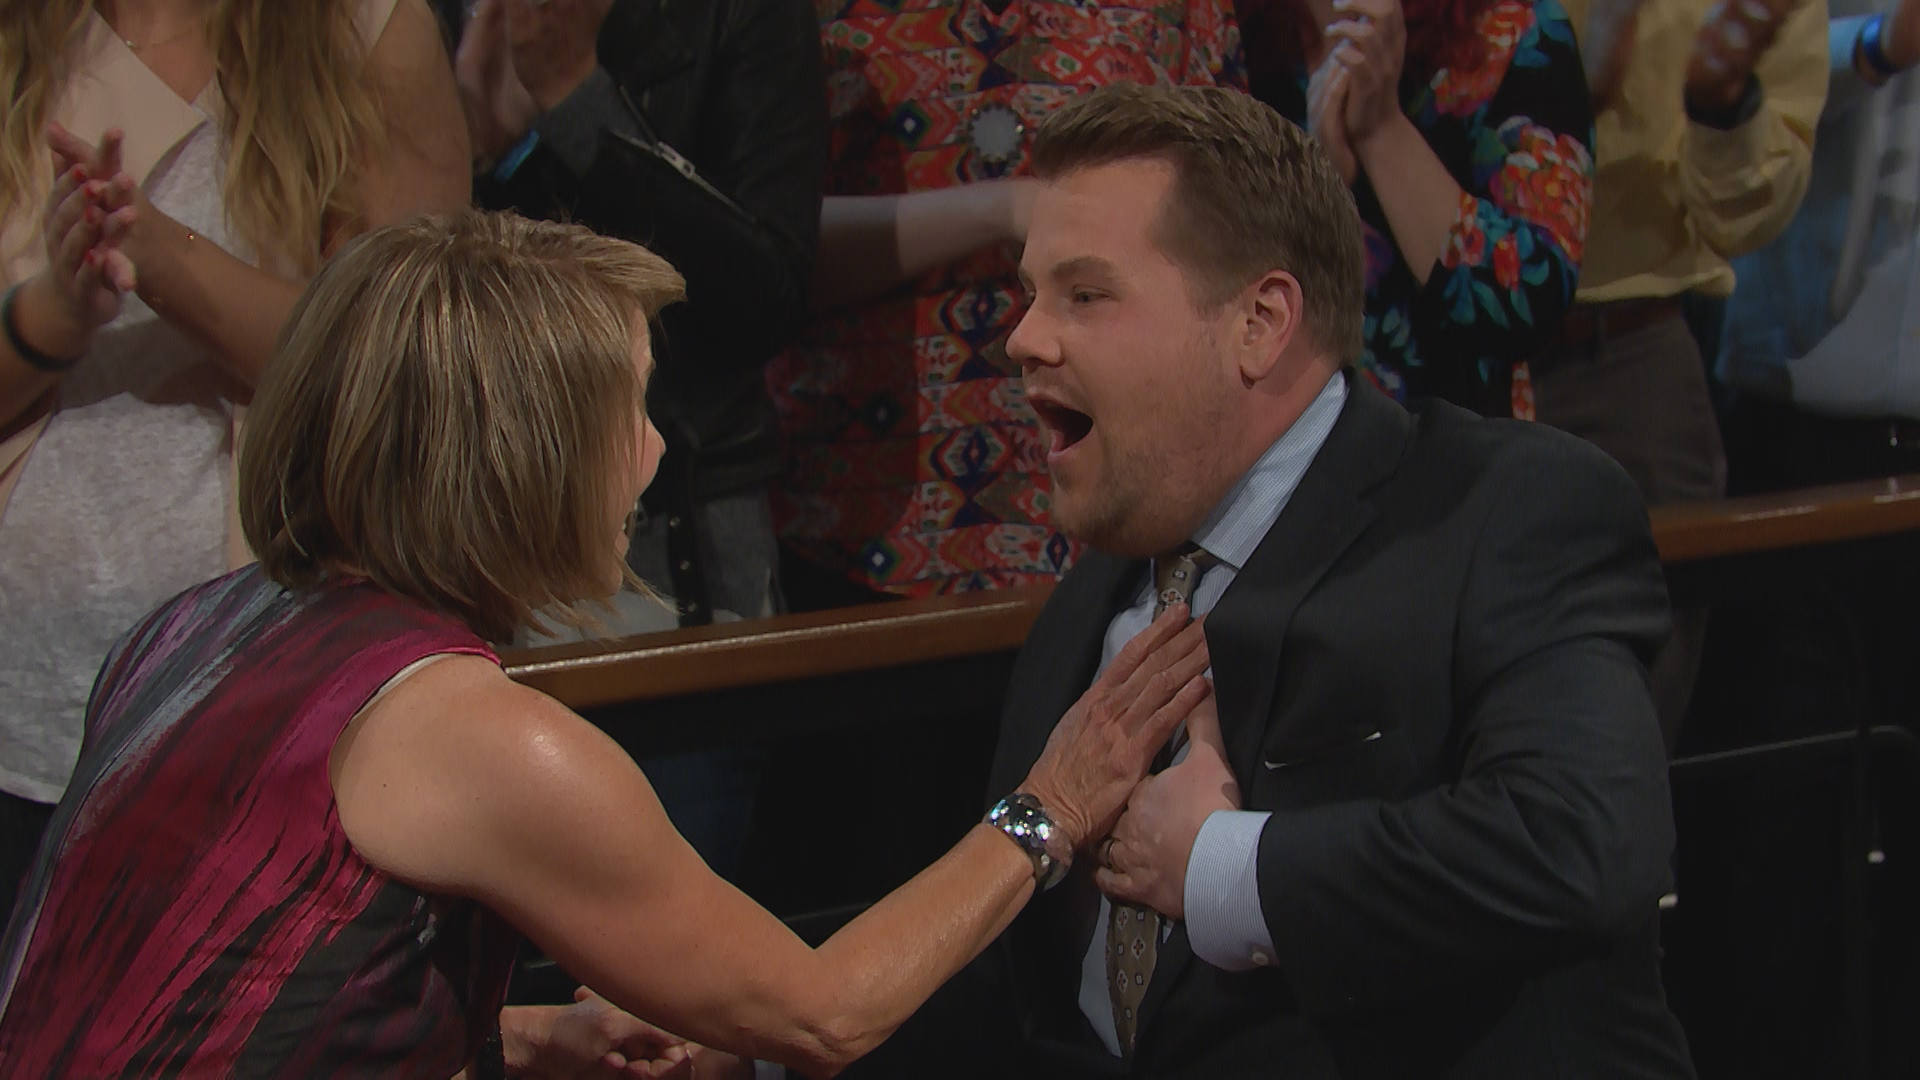 RT @latelateshow: Watch @katiecouric's epic prank again! http://t.co/iwfrWv7A3M #LateLateShow http://t.co/5yecgnppjF